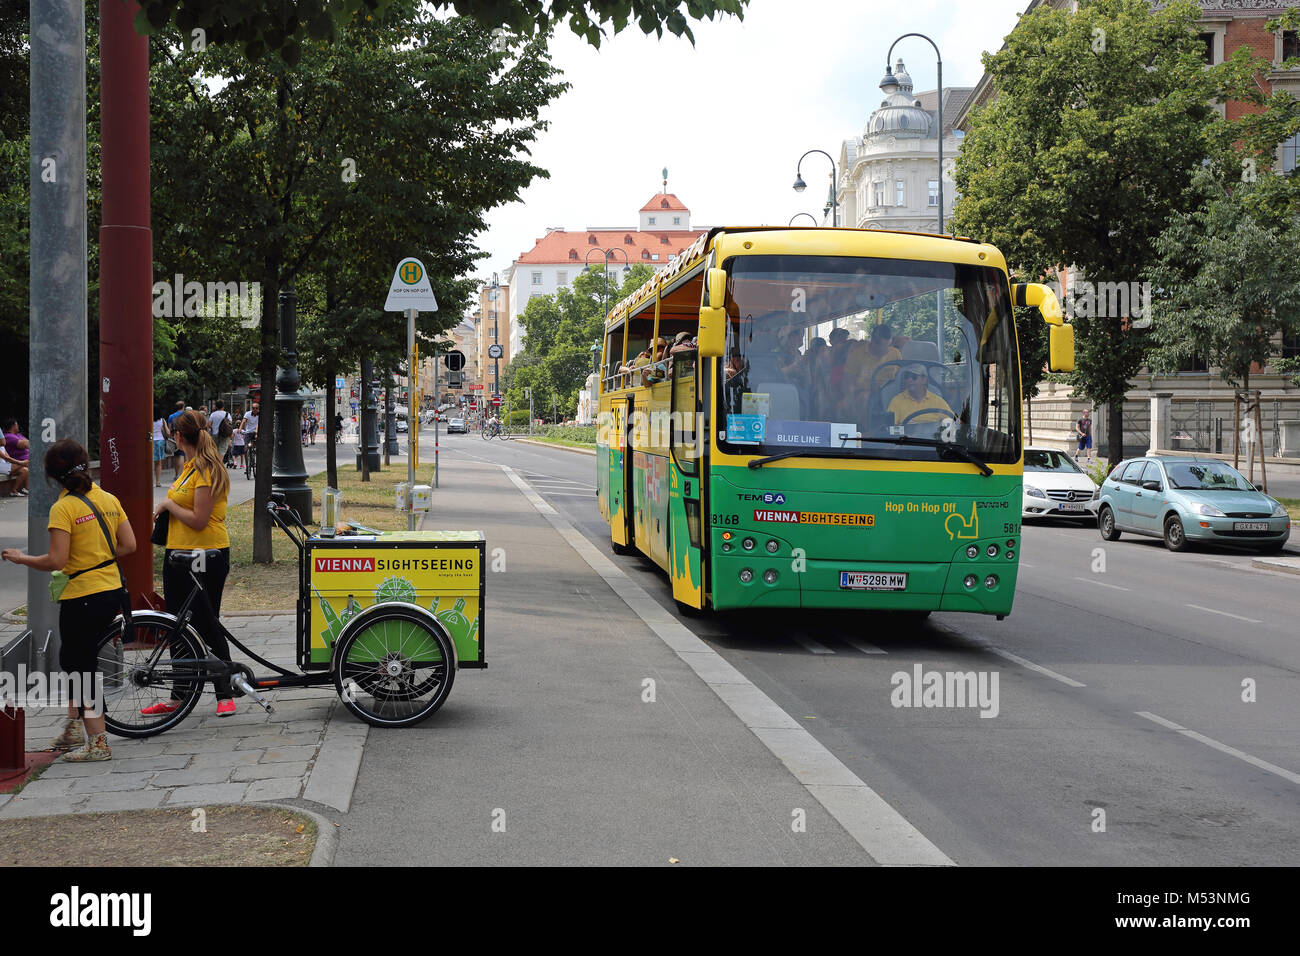 VIENNA, AUSTRIA - JULY 12, 2015: Two Promoters With Cargo Bicycle and Sightseeing Tourist Bus in Vienna, Austria. - Stock Image